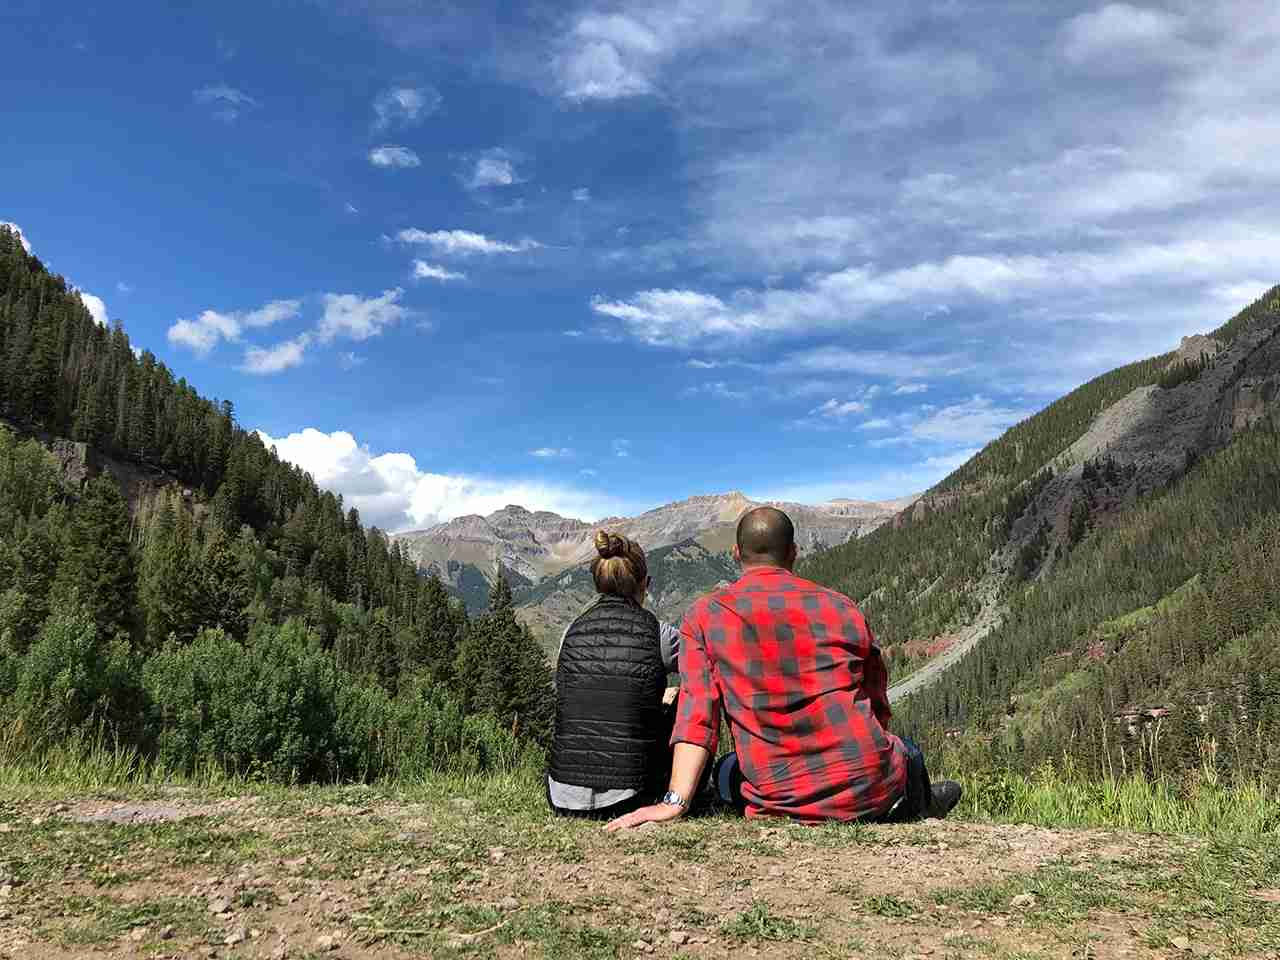 Enjoying a tenth anniversary hike in Telluride